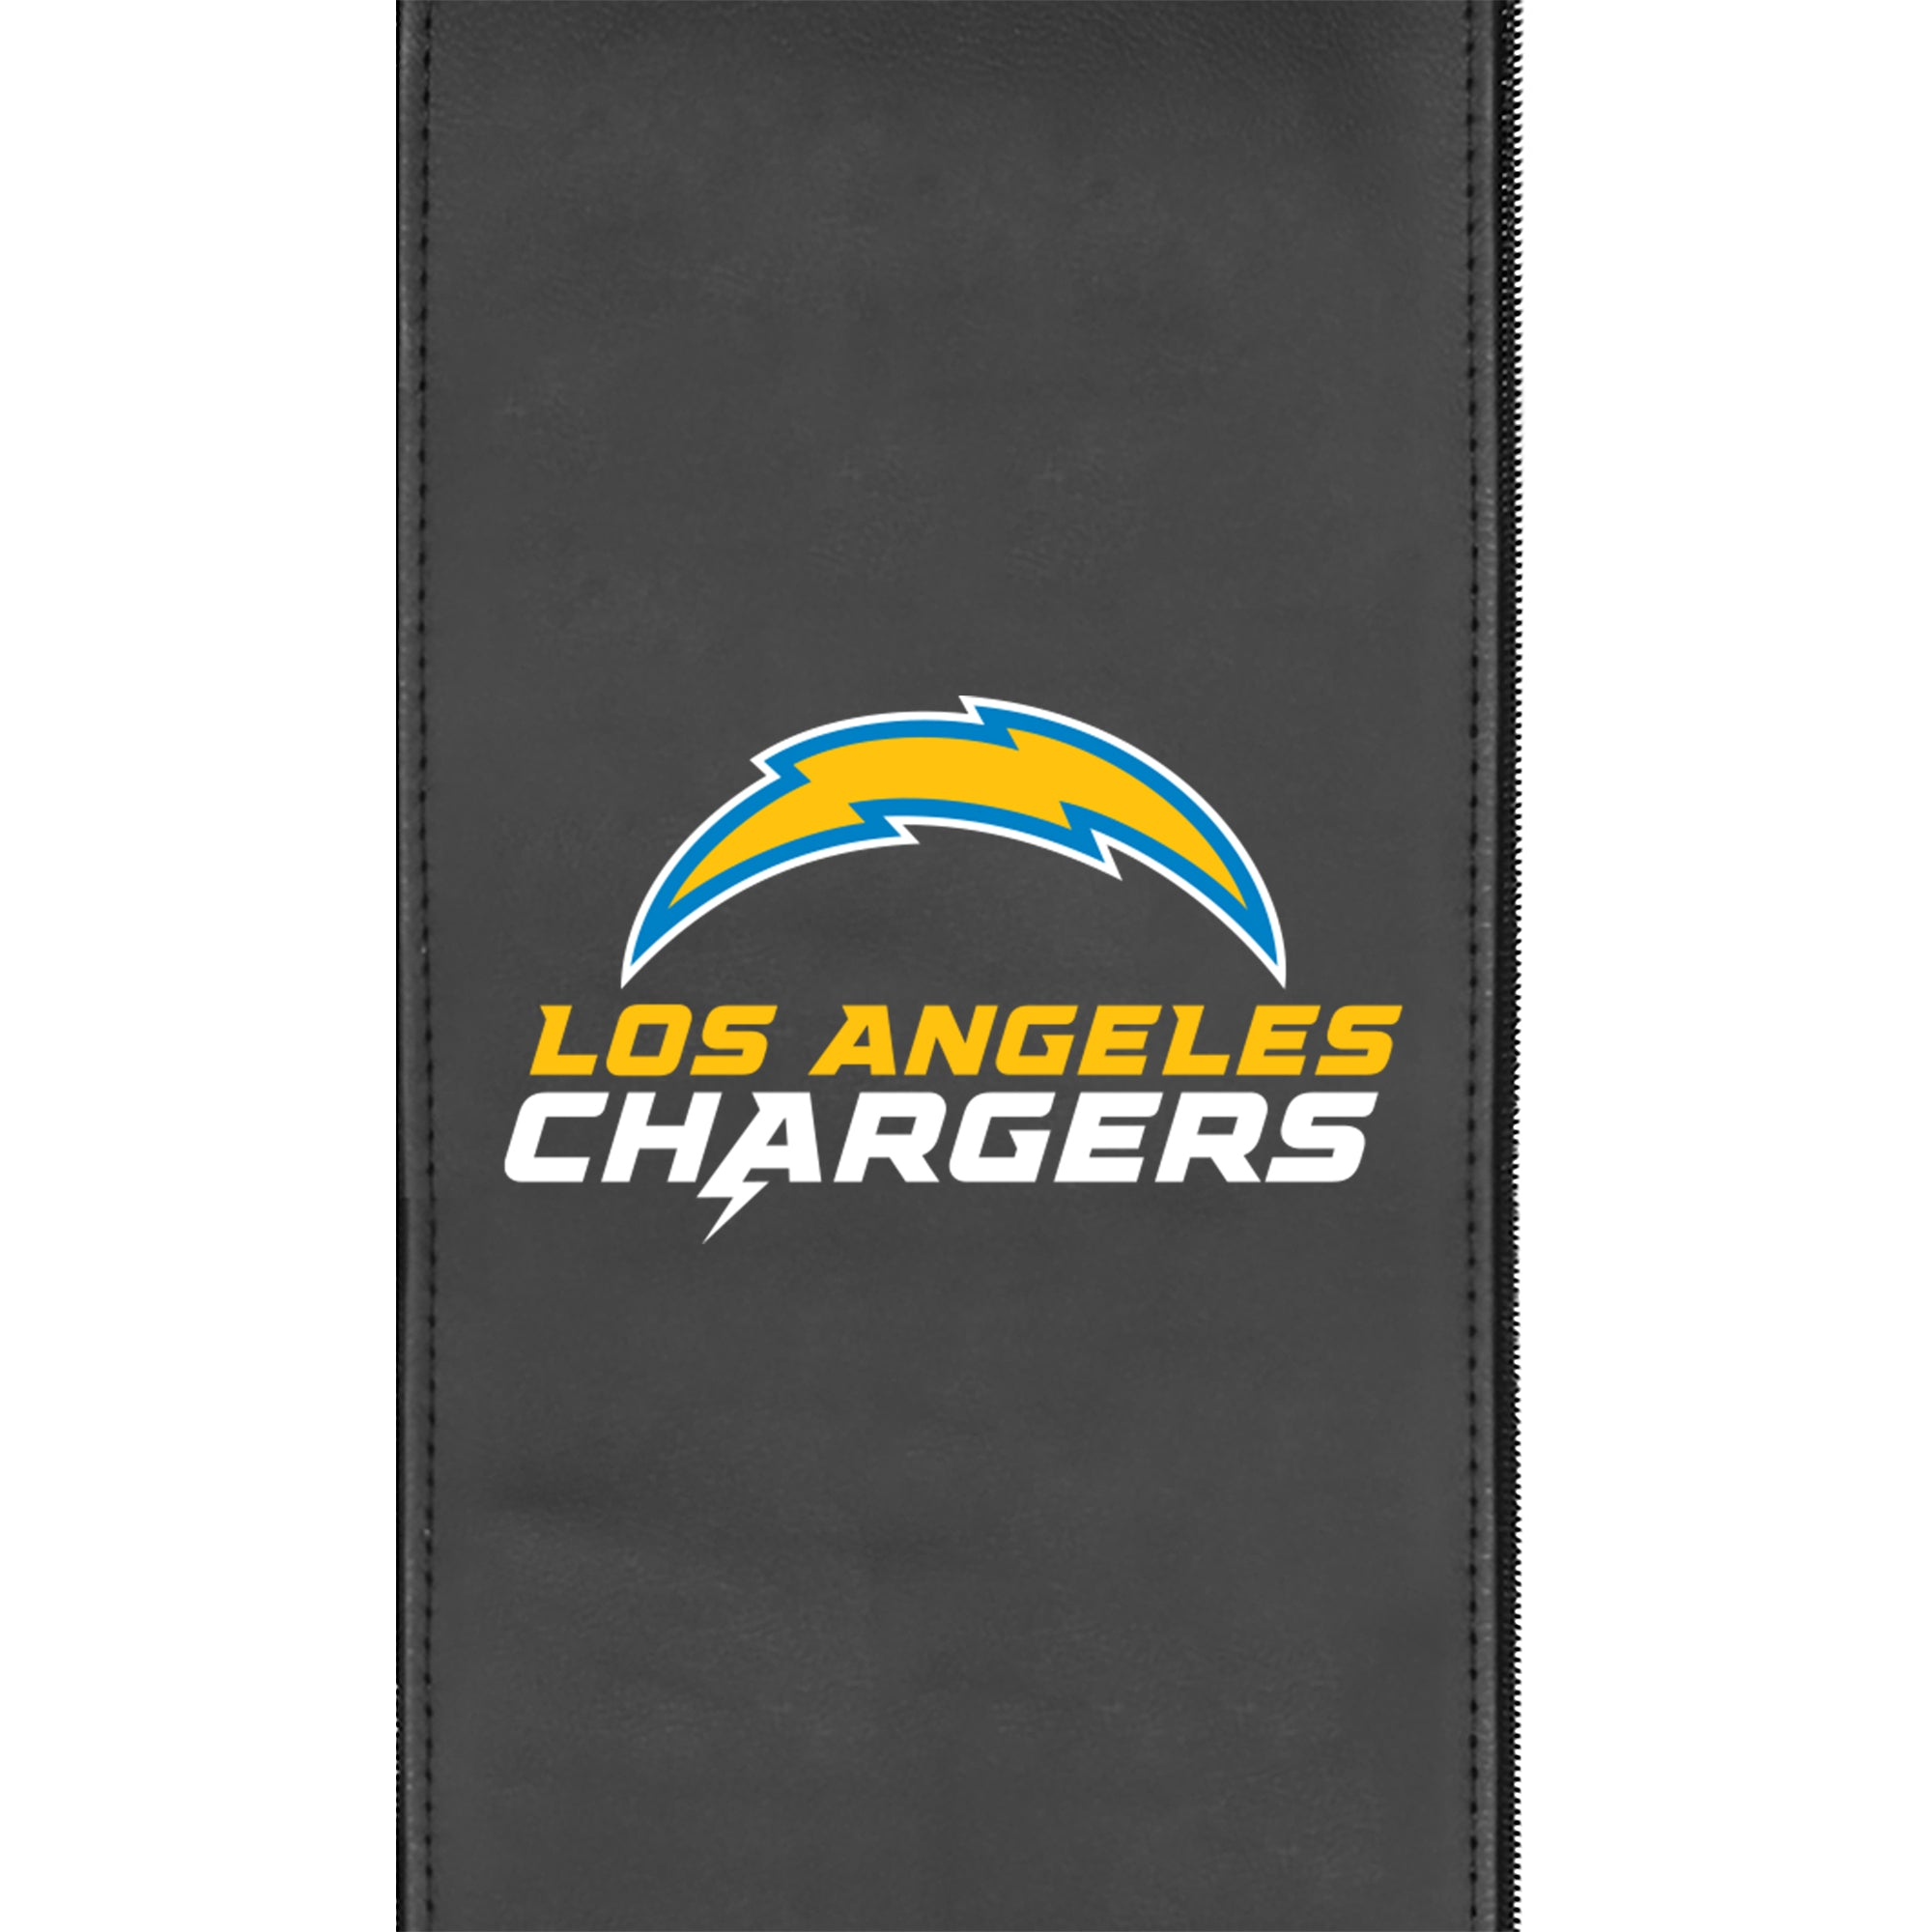 Los Angeles Chargers Secondary Logo Panel